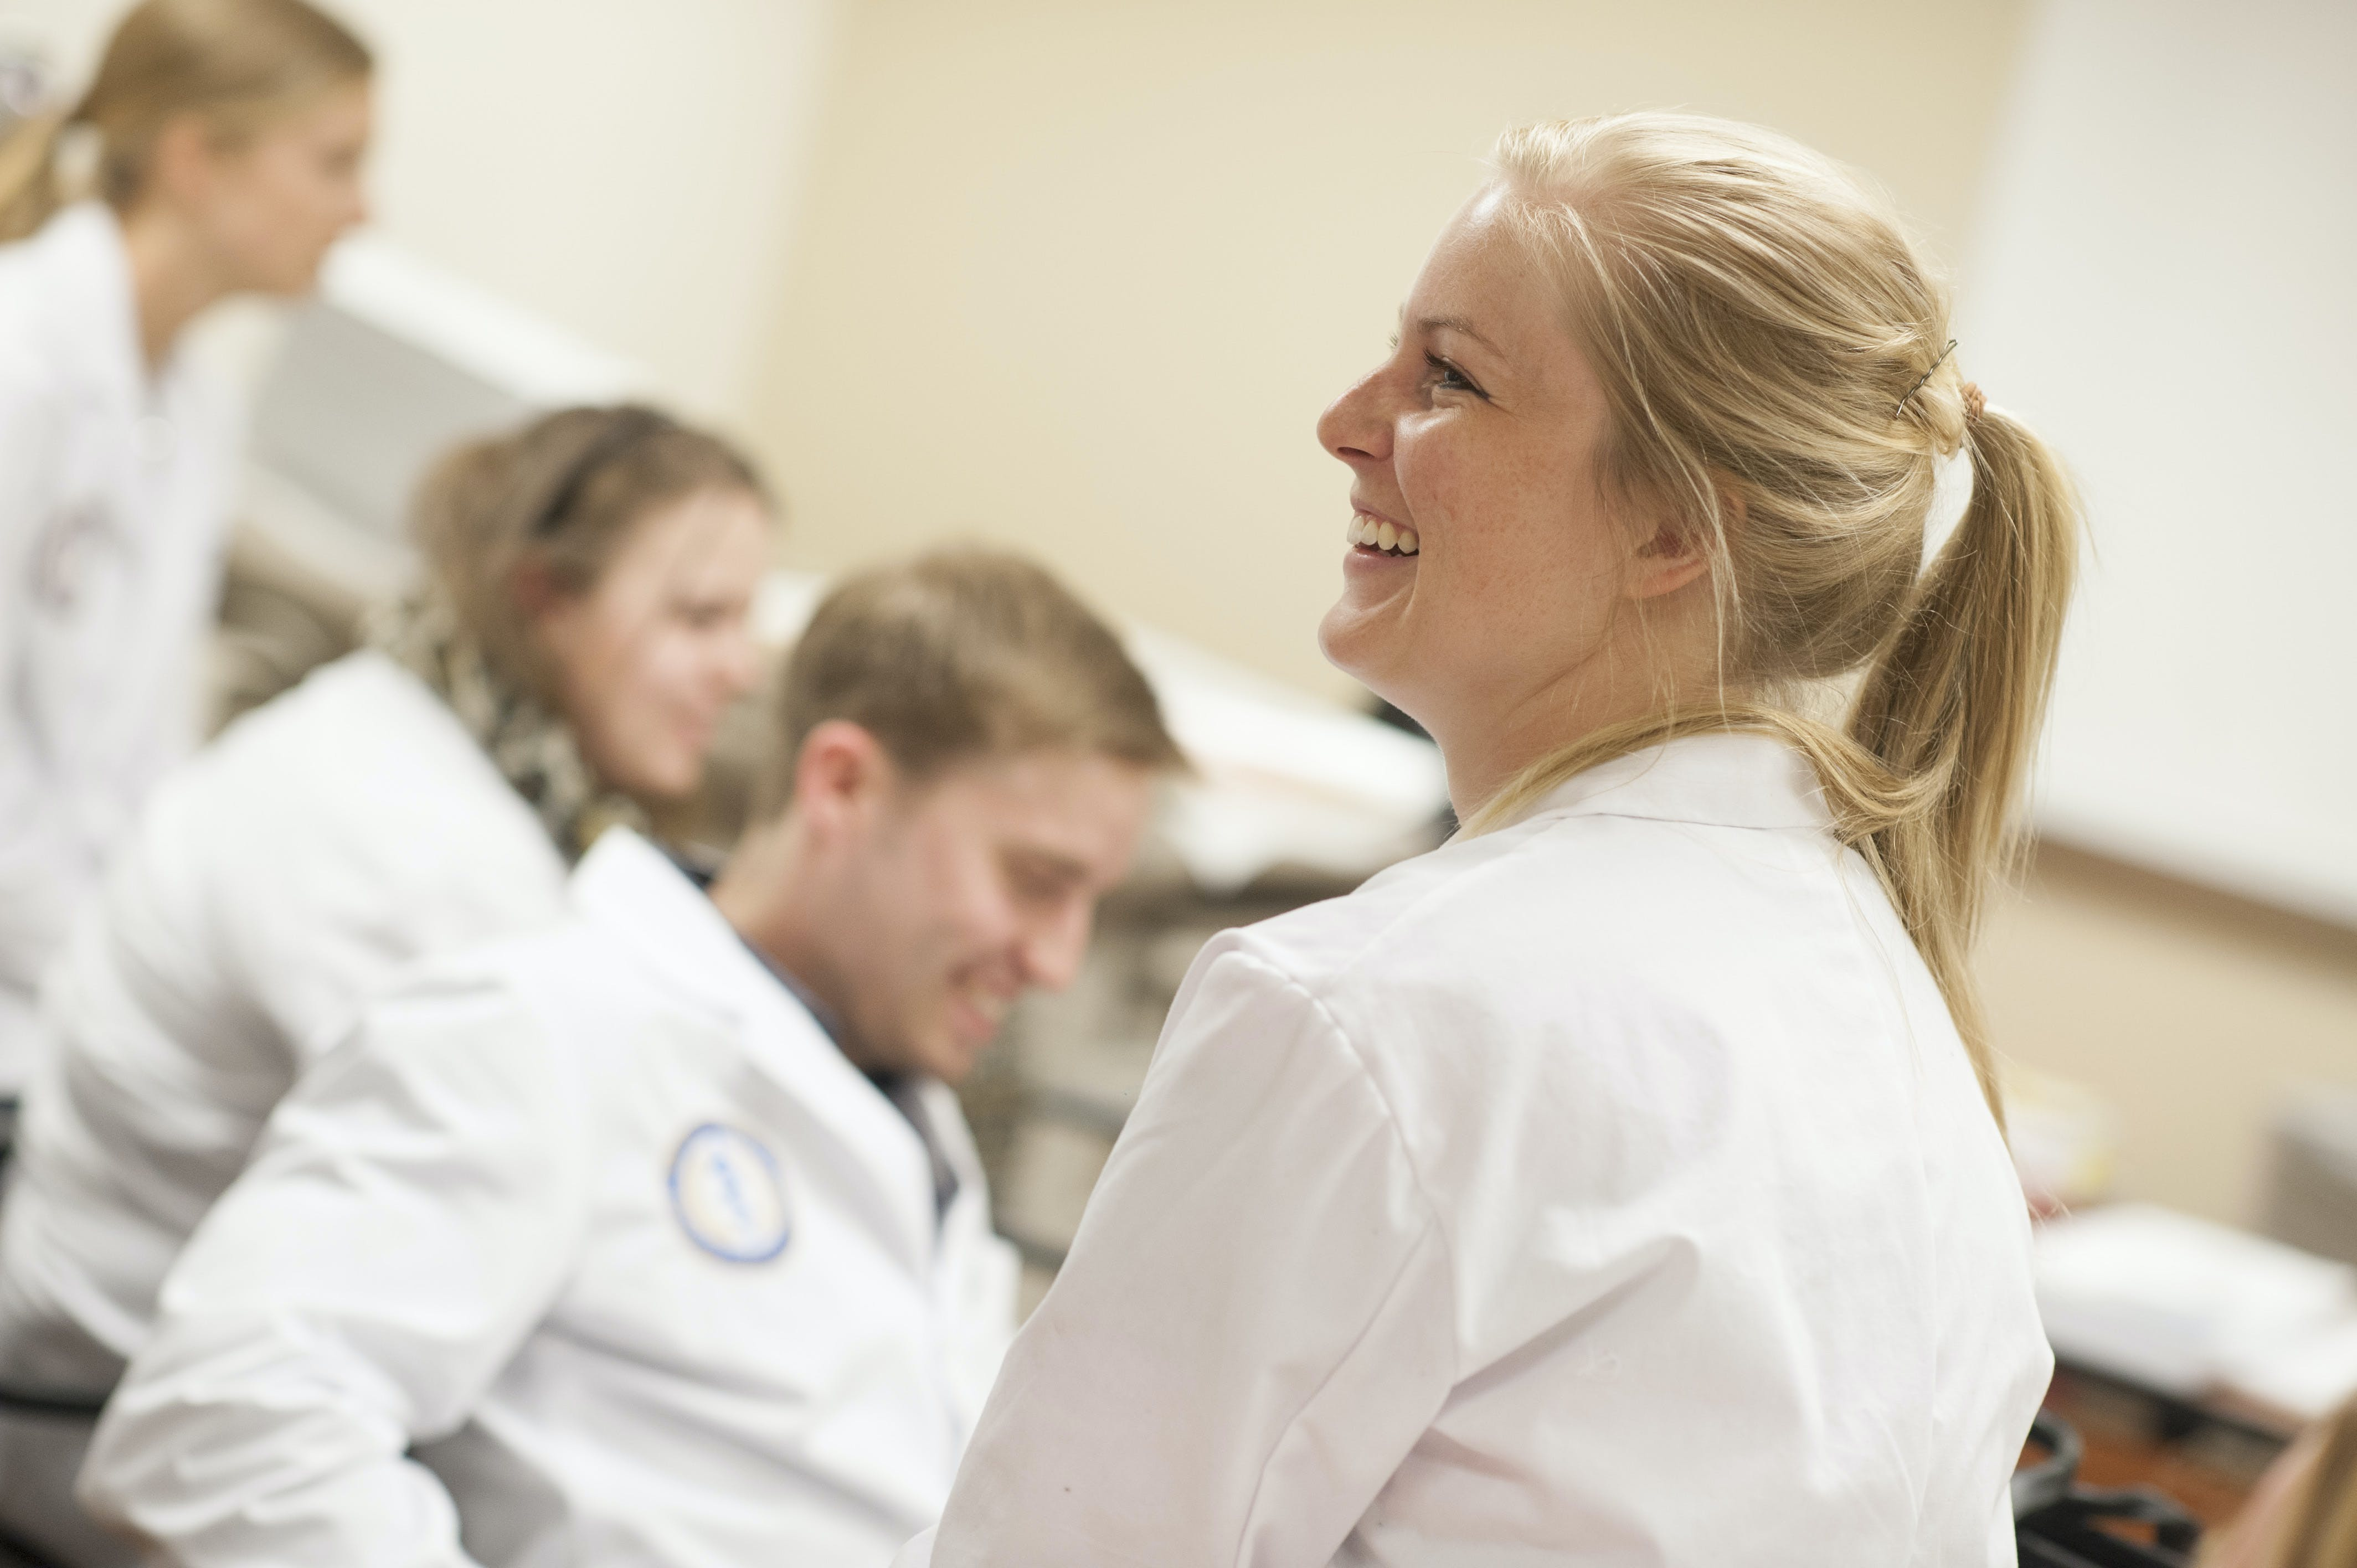 Men and women in the physician assistant program